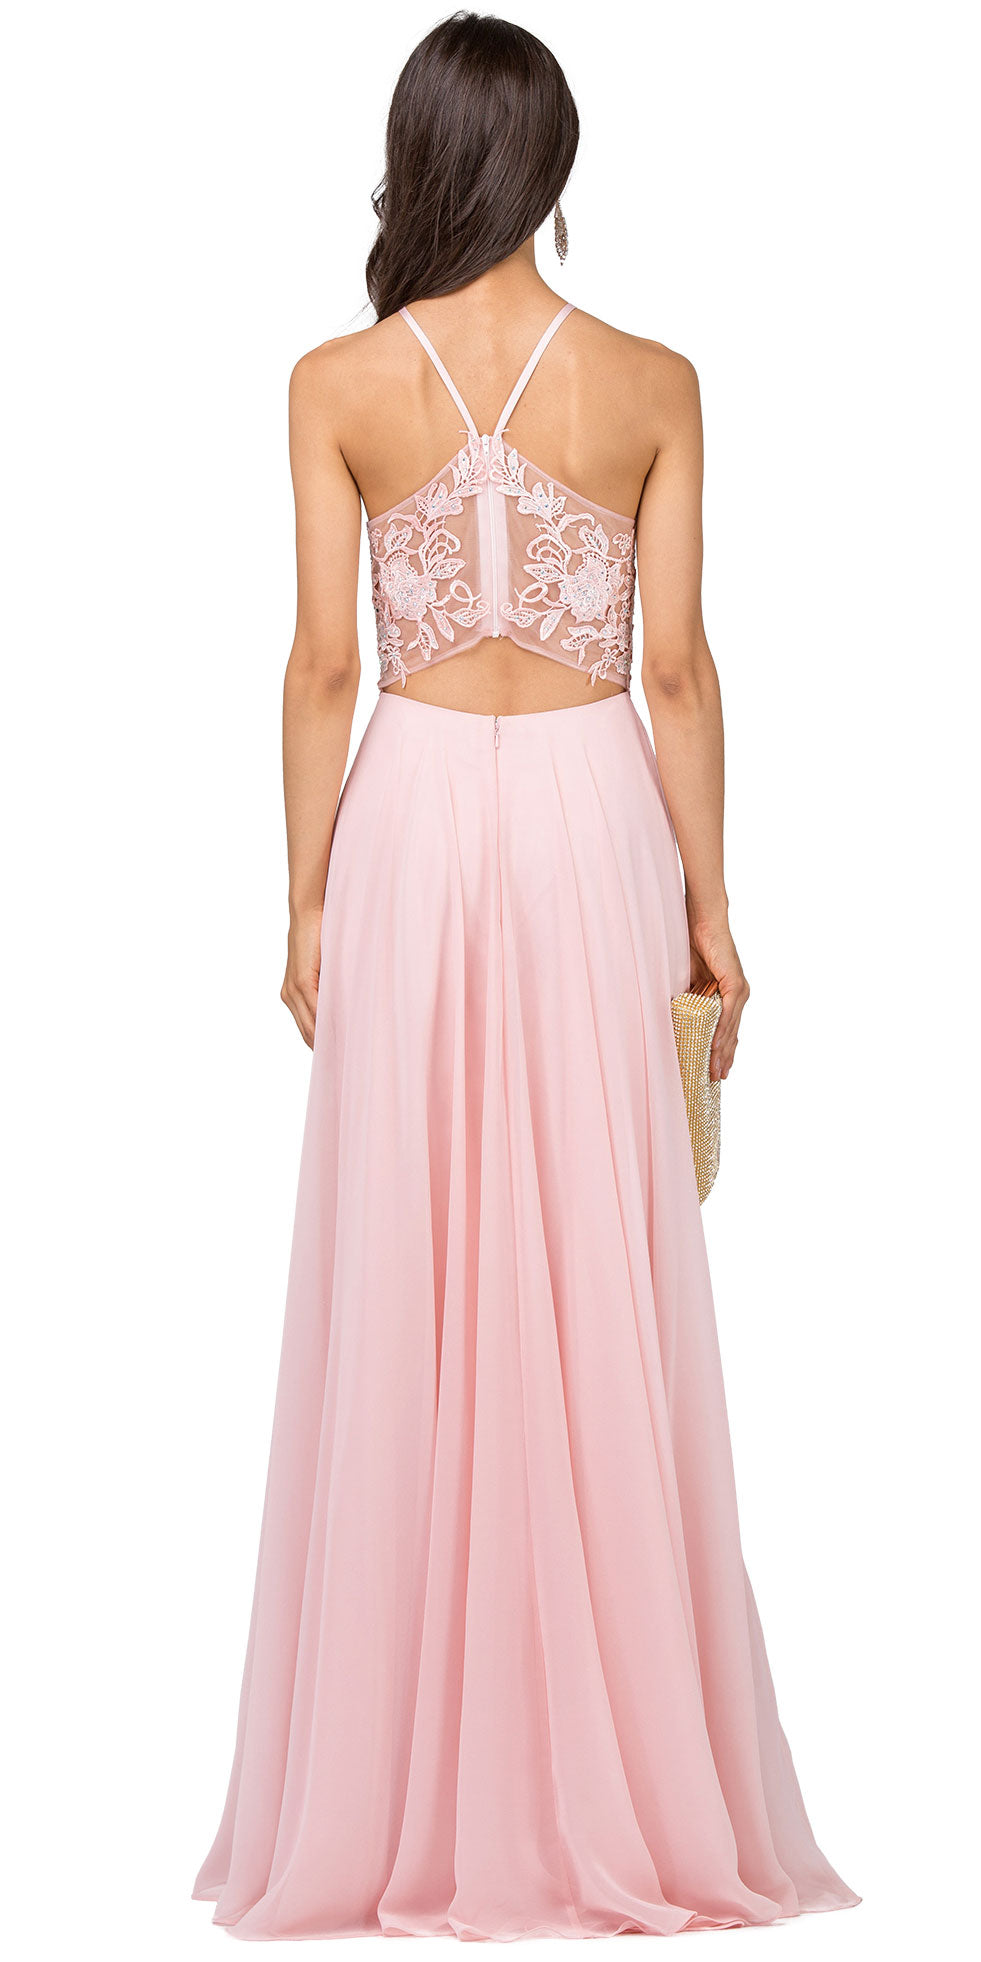 Back image of Lace Accent Sheer Mesh Top Chiffon Long Prom Dress